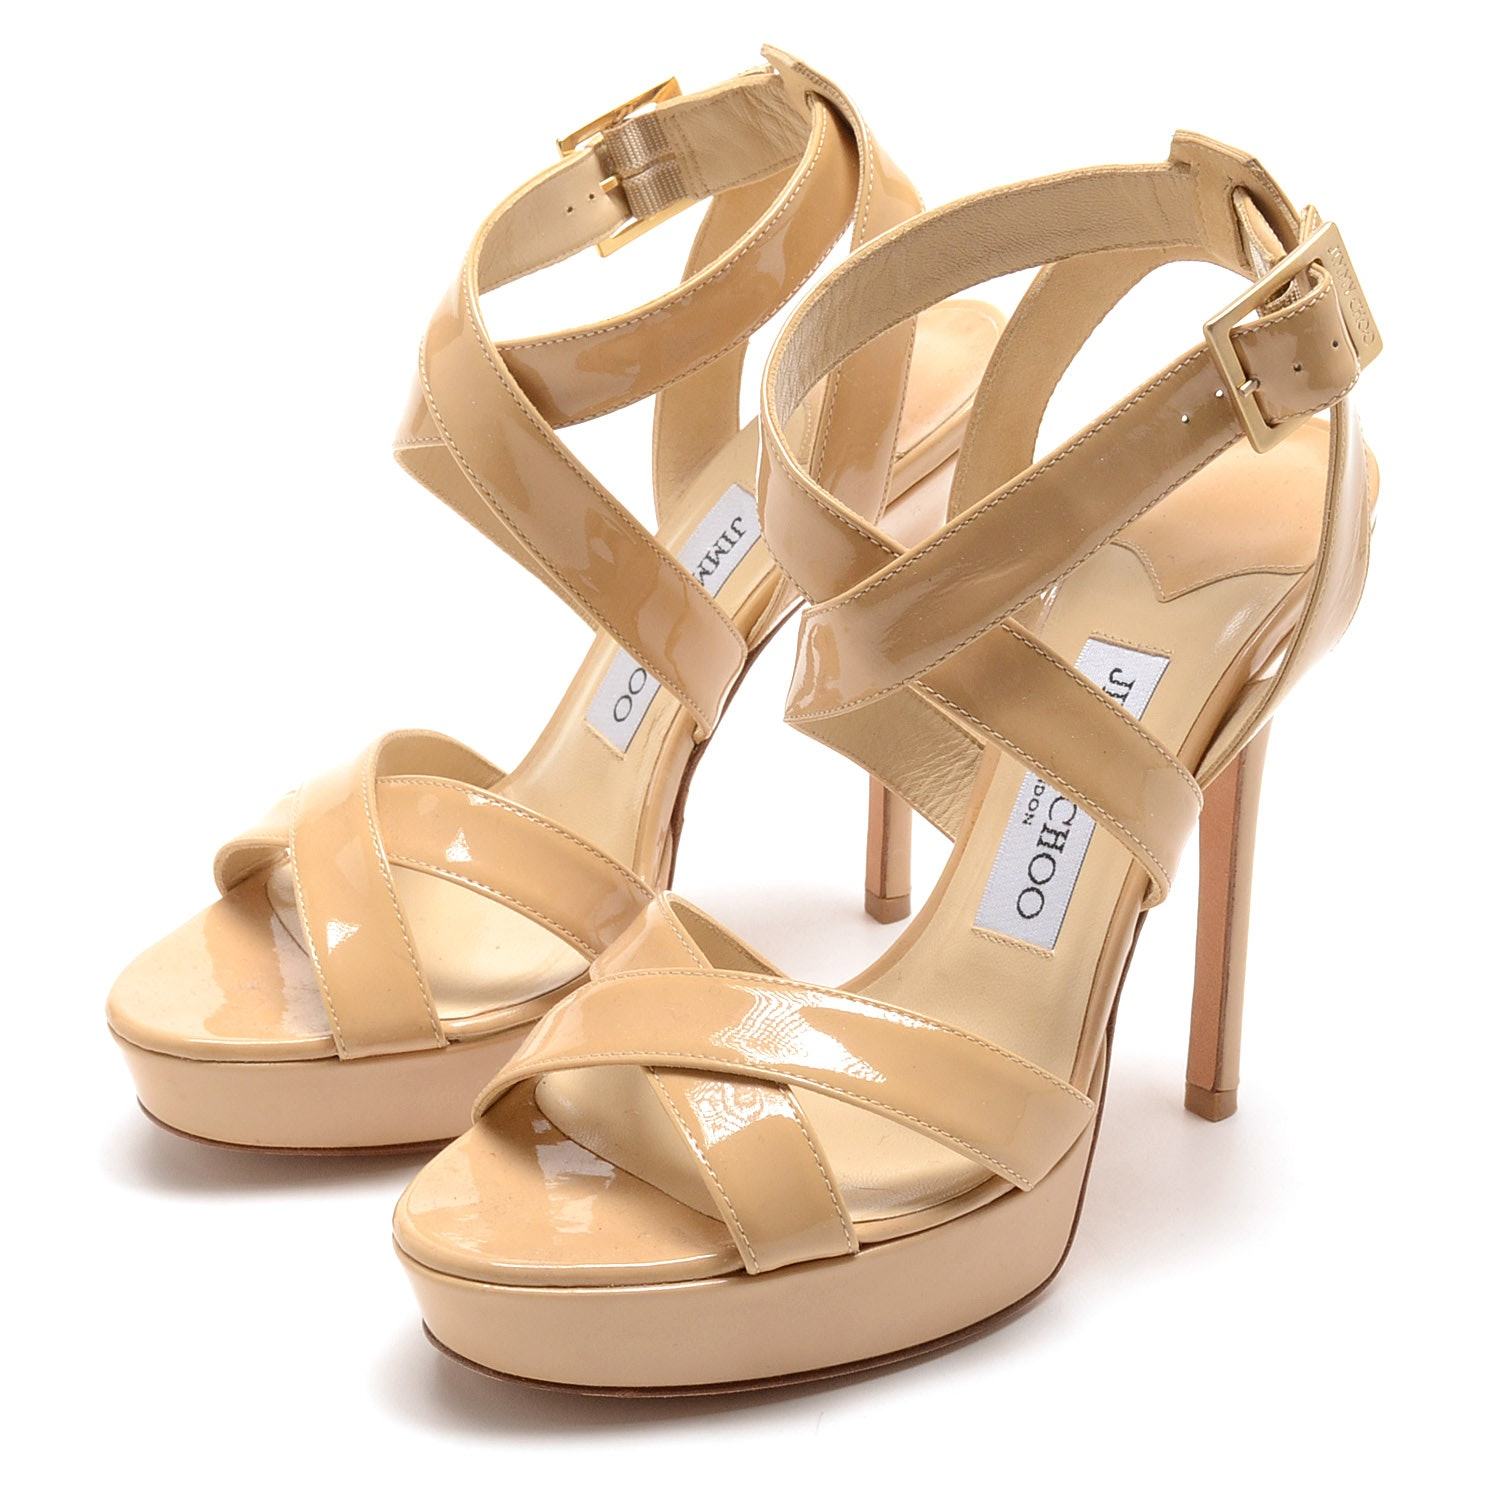 Jimmy Choo of London Butterscotch Patent Leather Platform Strappy Dress Sandals